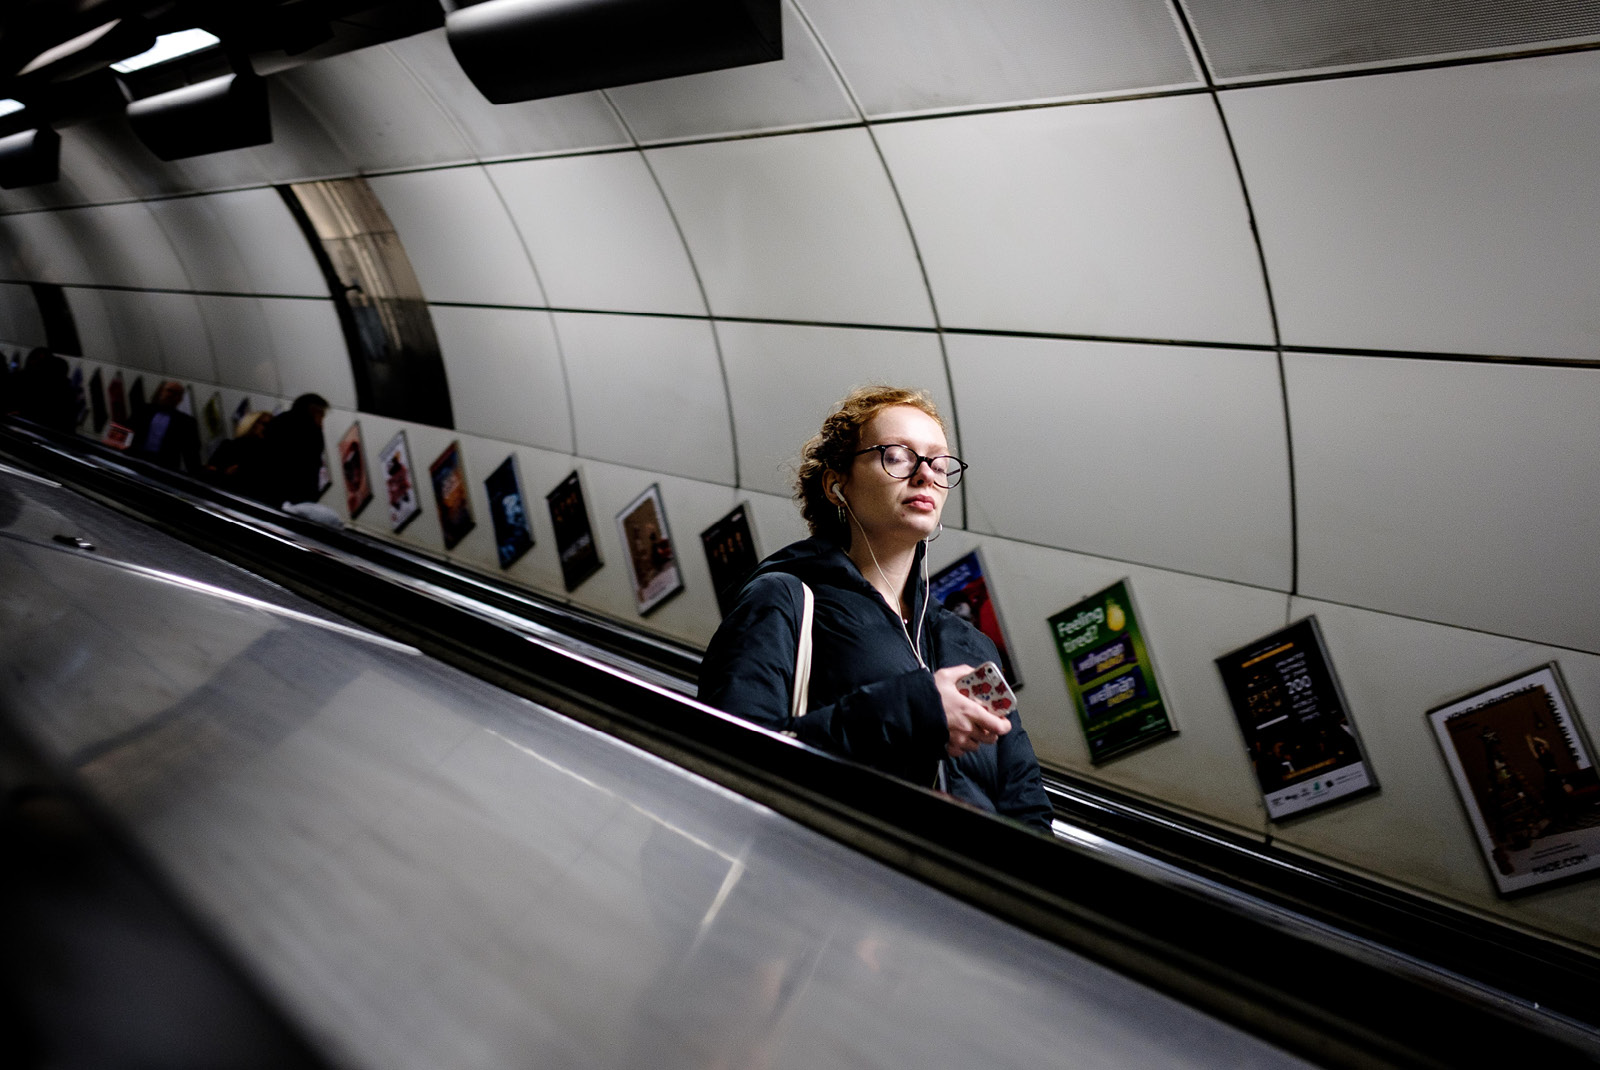 24-hours-on-the-london-underground-night-tube-street-photography-tarikahmet-underground-music